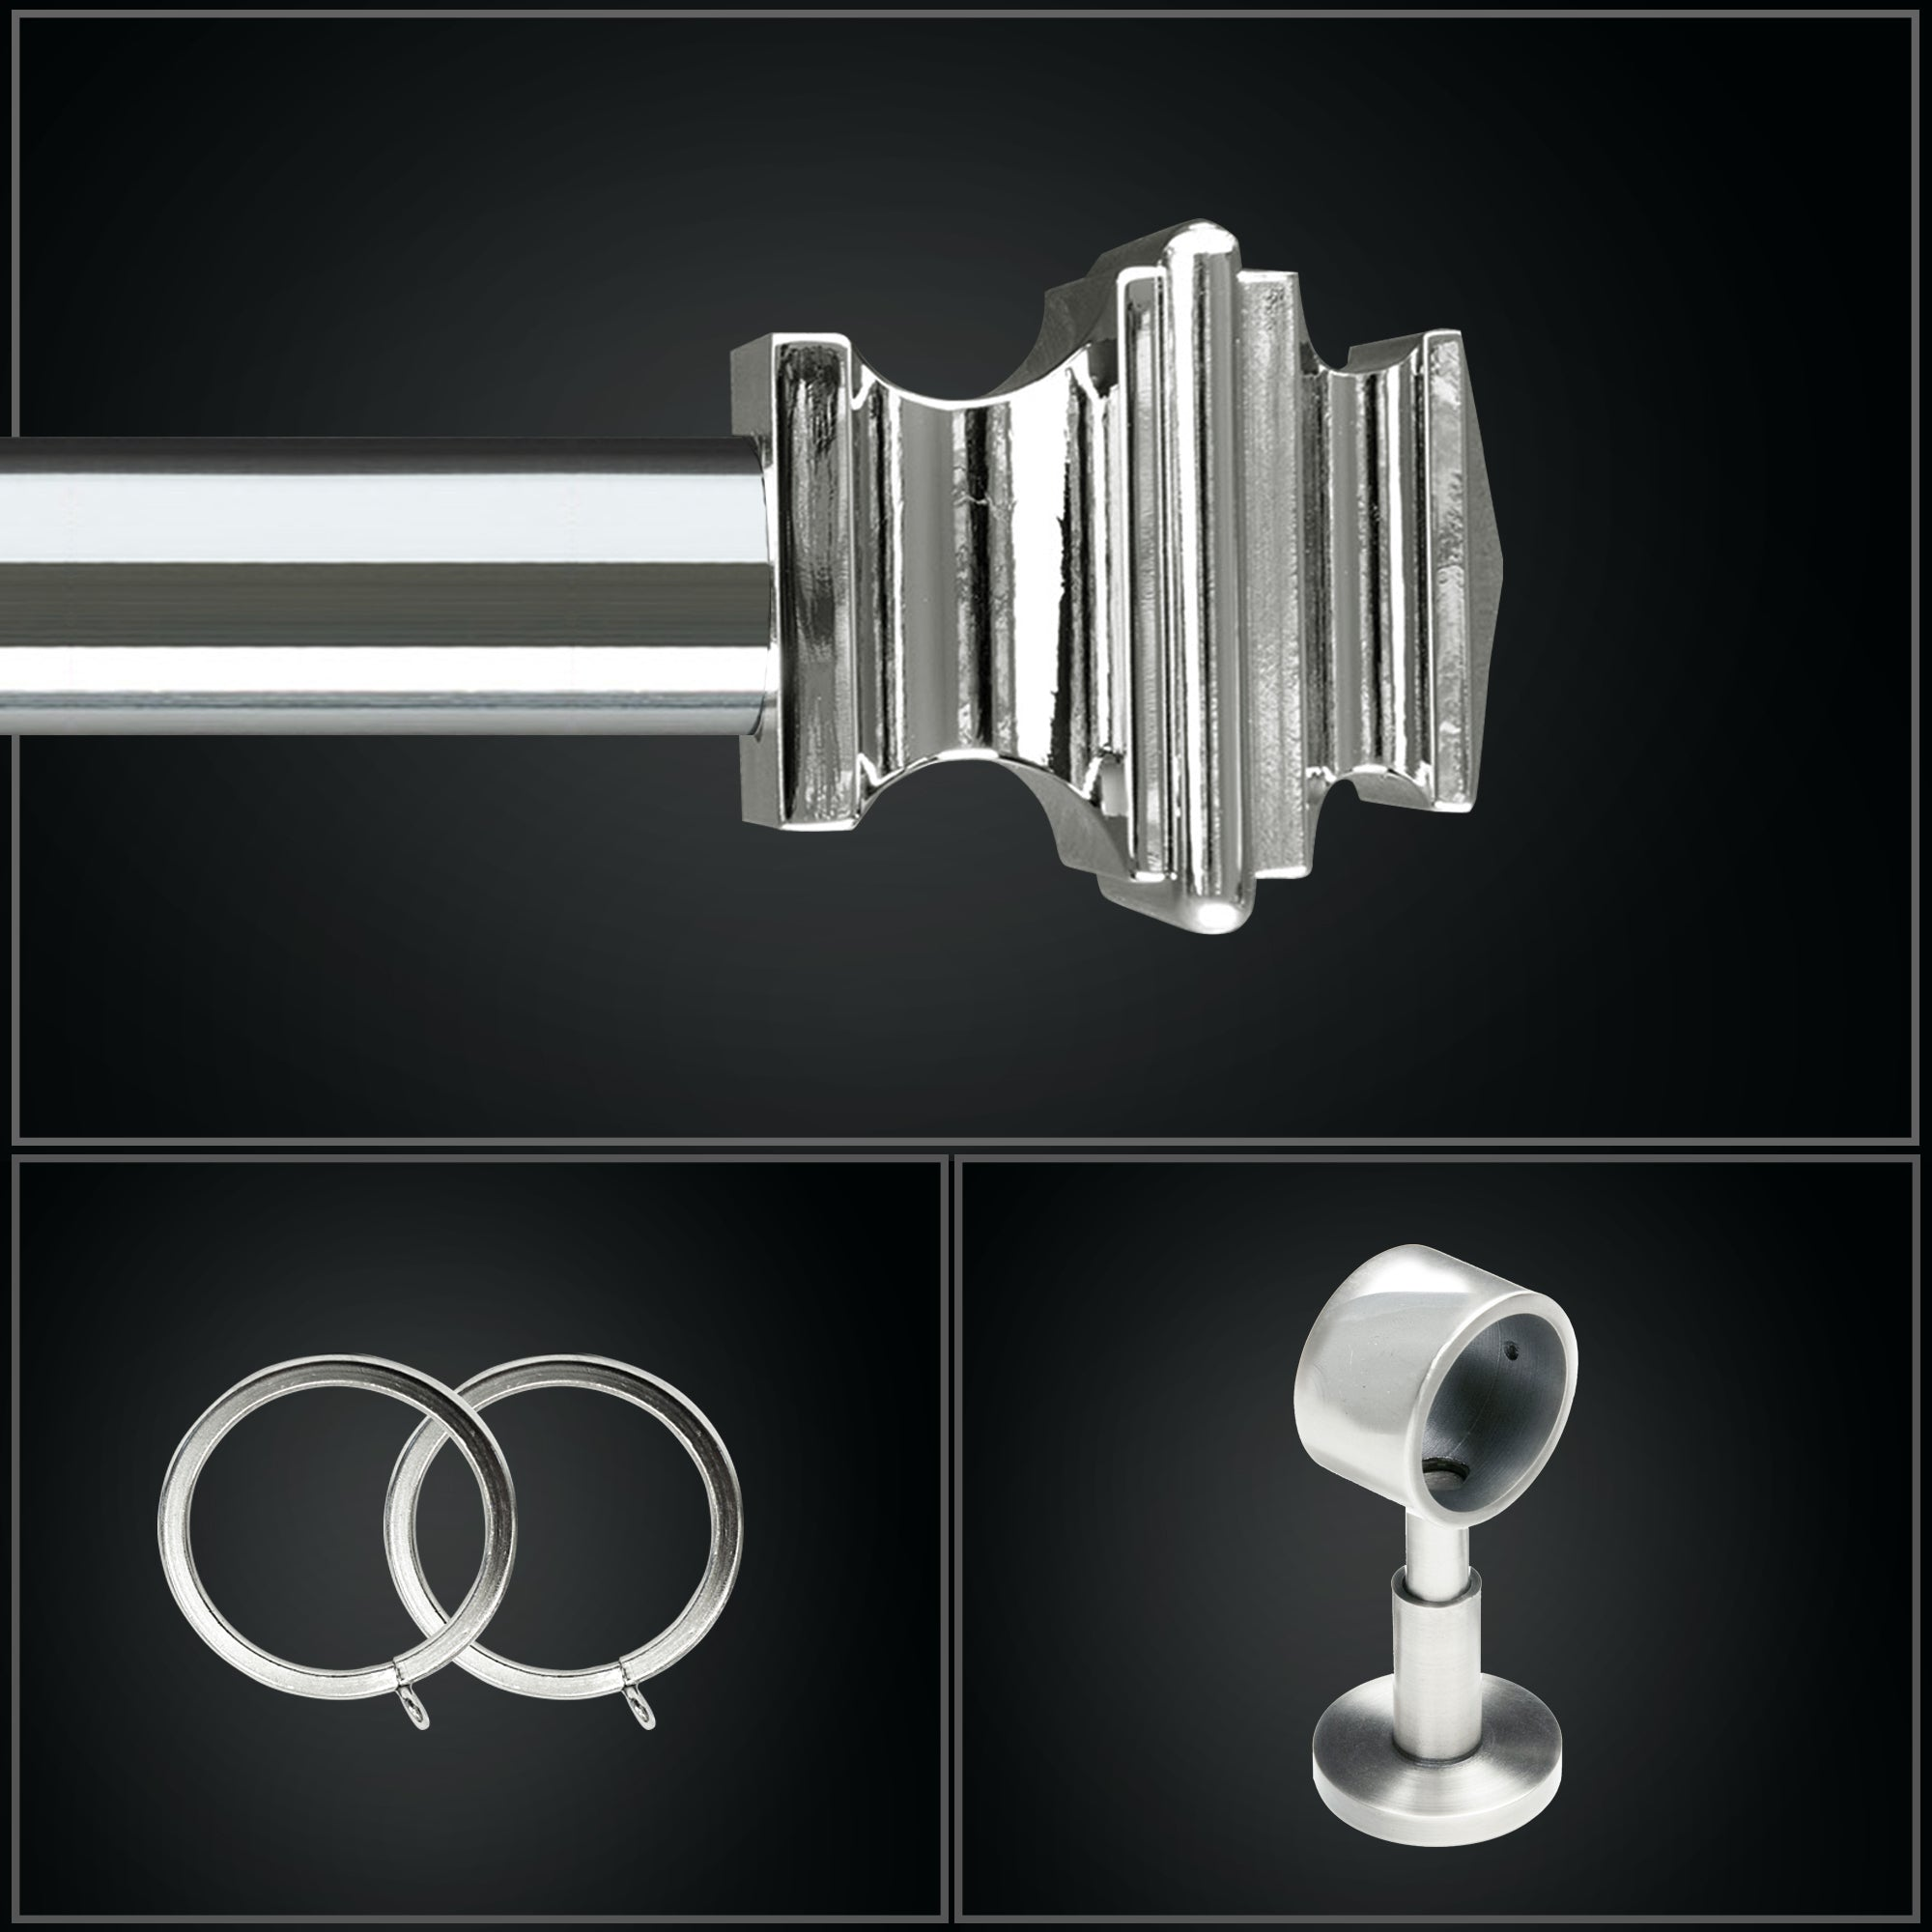 Hudson Metal Drapery Hardware - Mirrored Chrome